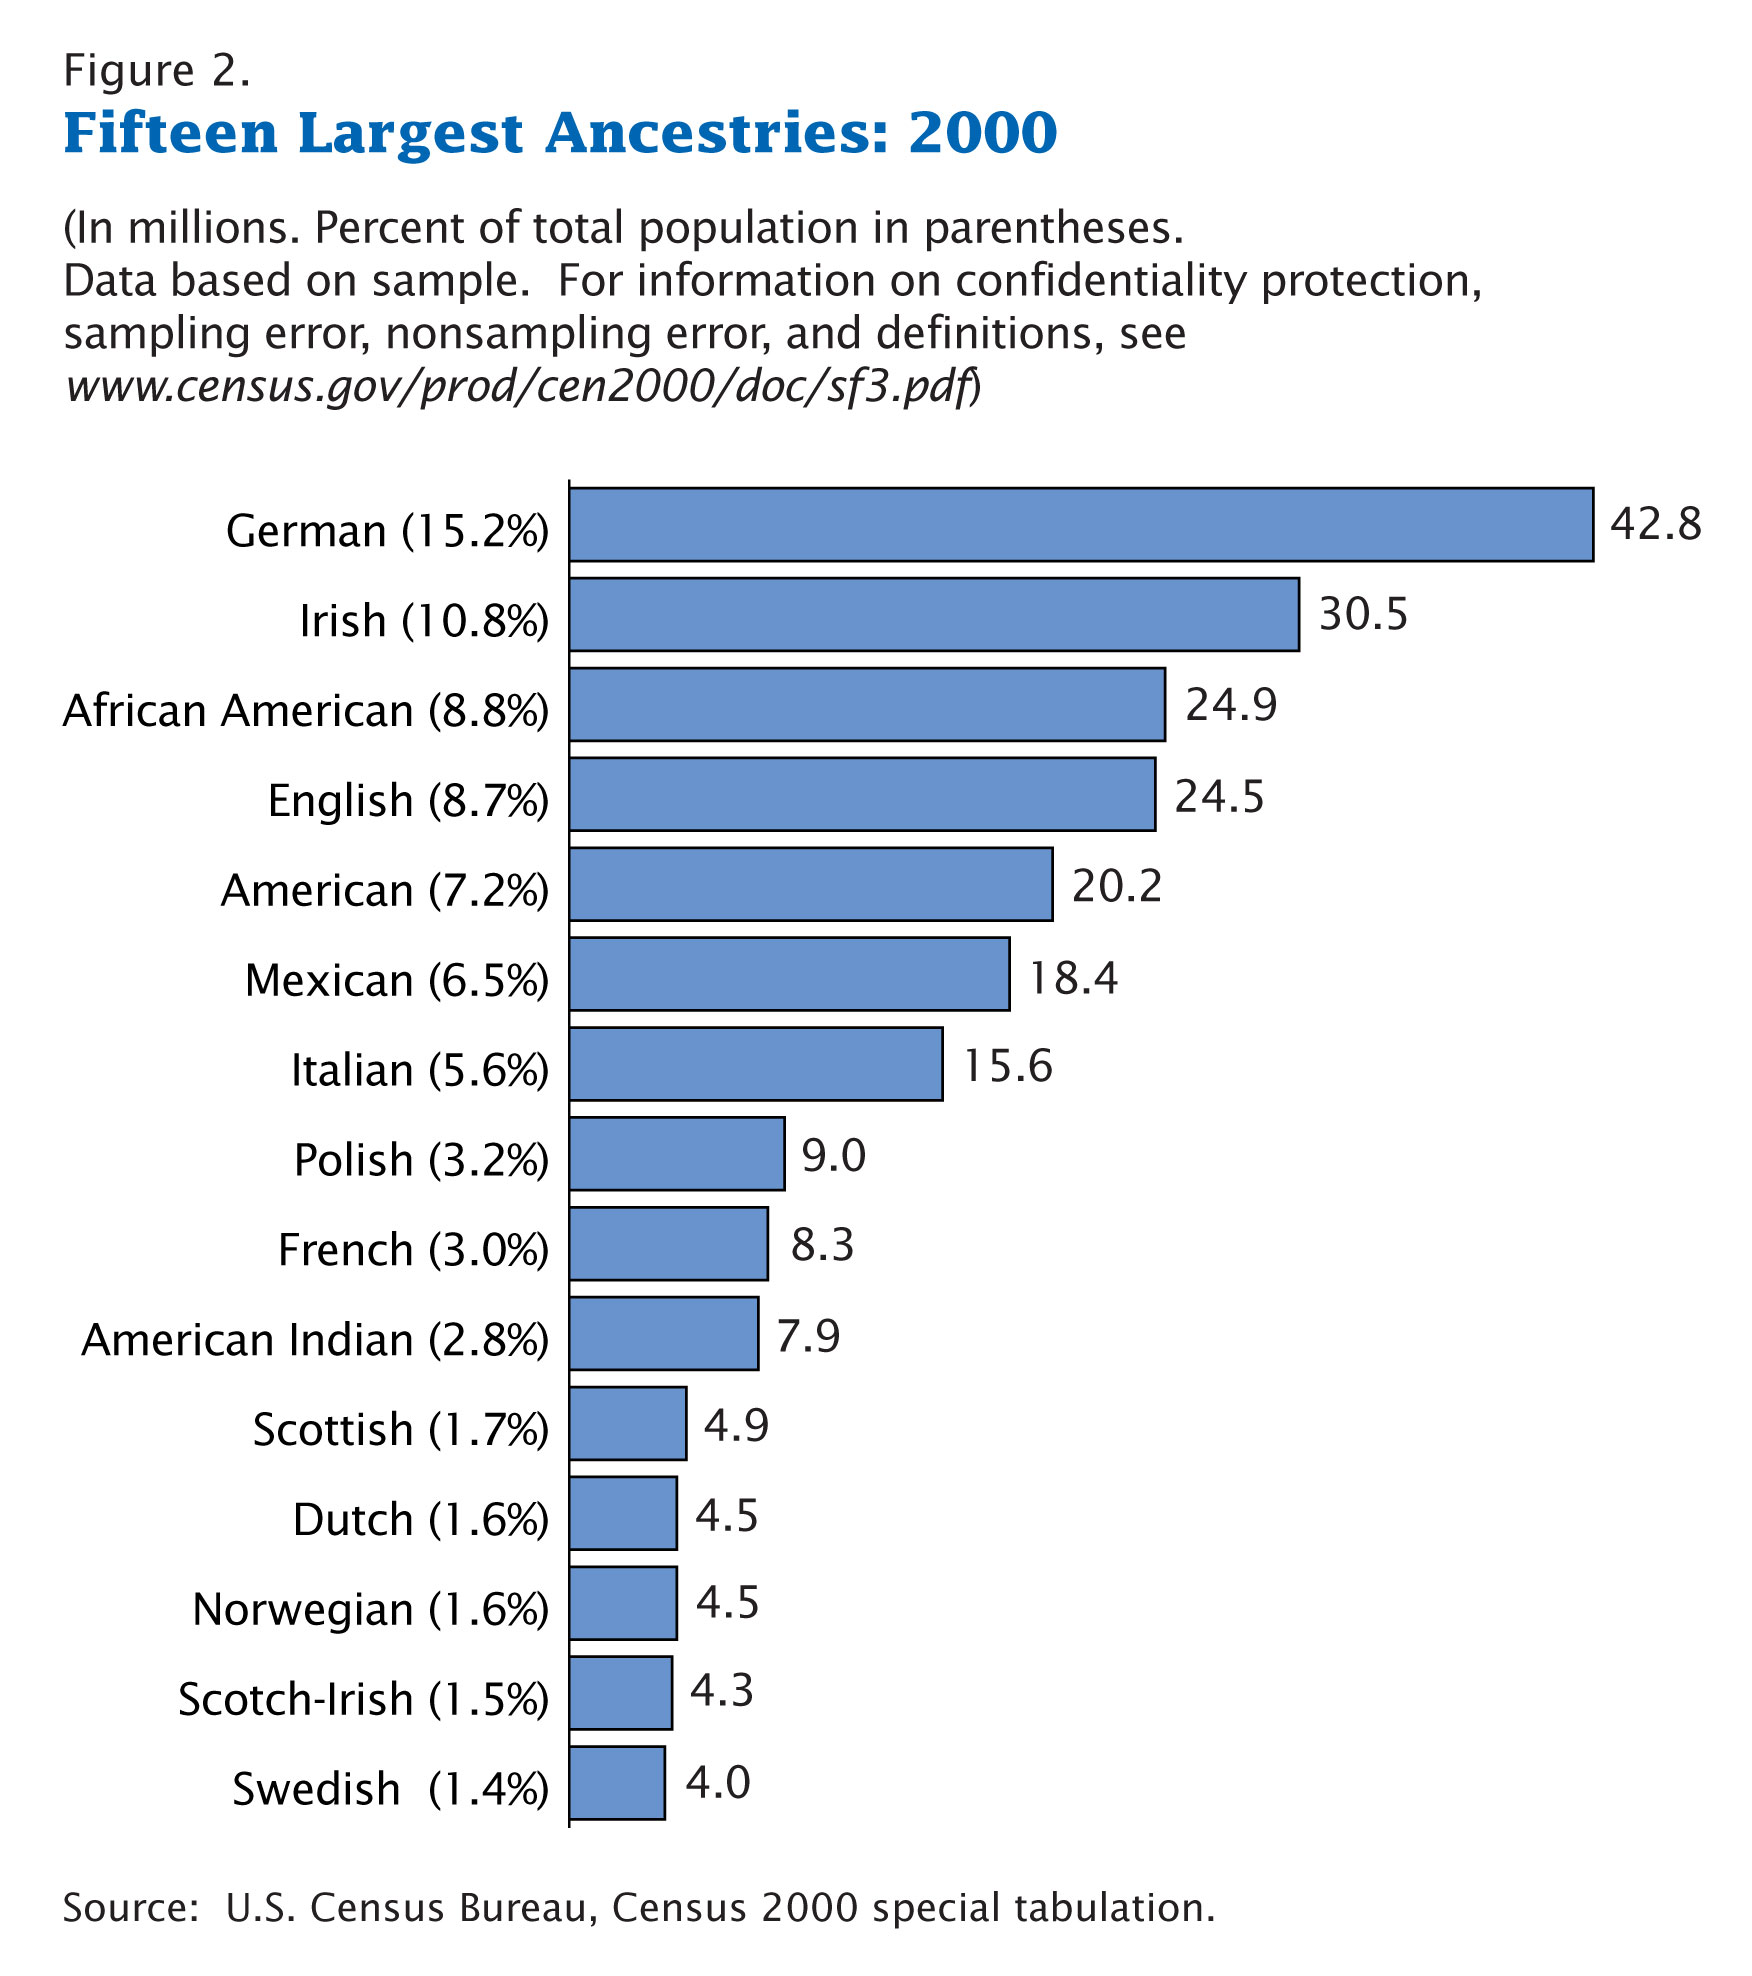 https://i0.wp.com/upload.wikimedia.org/wikipedia/commons/4/44/Census-2000-Data-Top-US-Ancestries.jpg